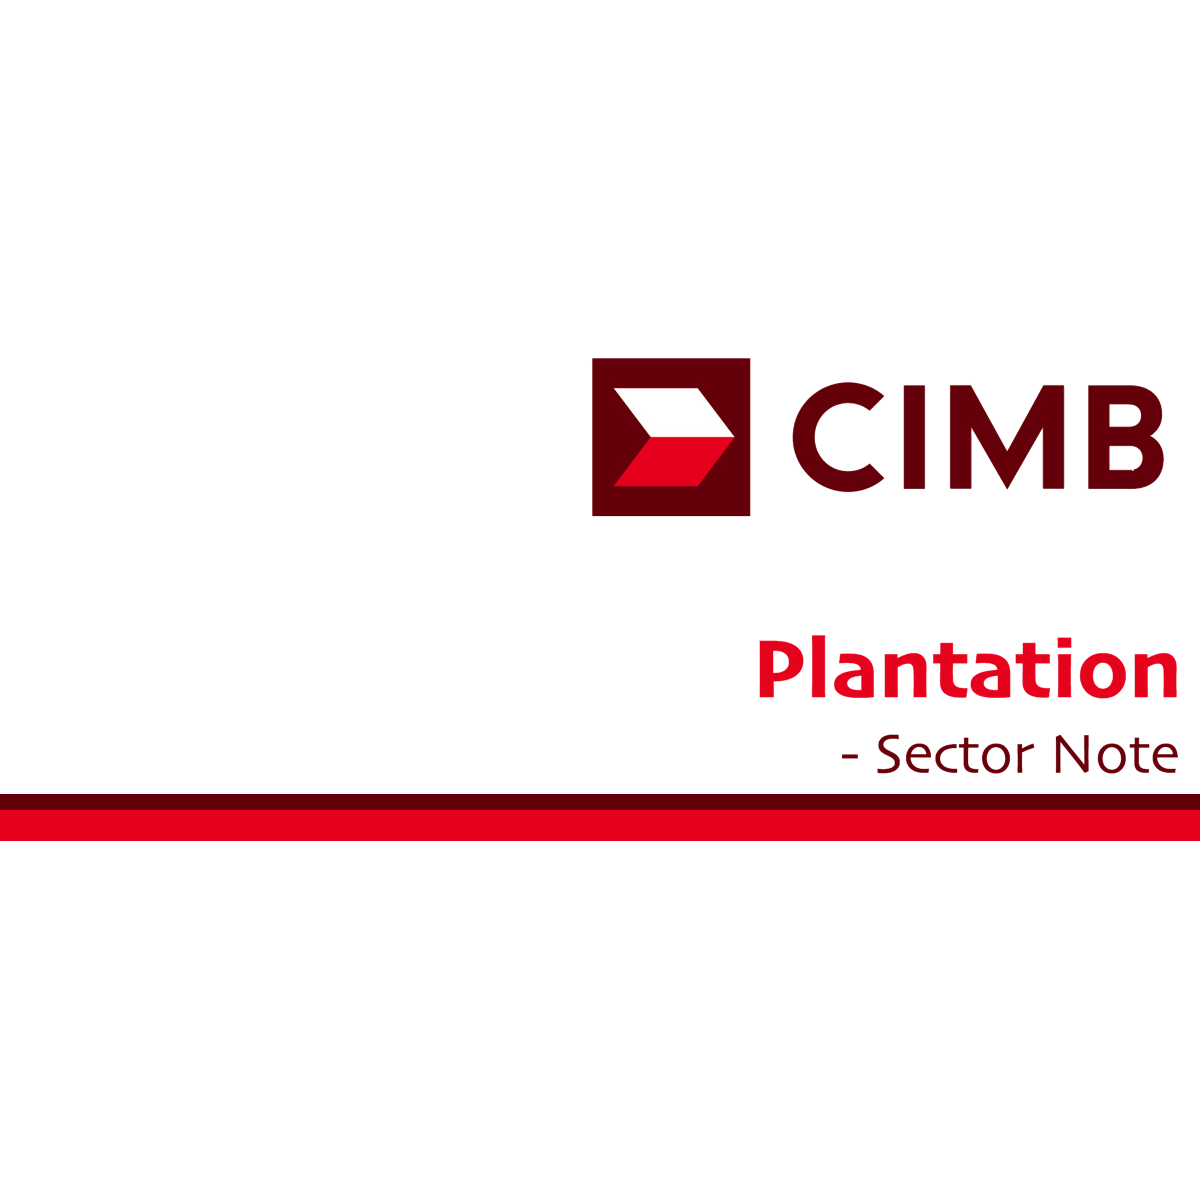 Commodities - CIMB Research 2016-12-05: Neutral, a better year in 2017